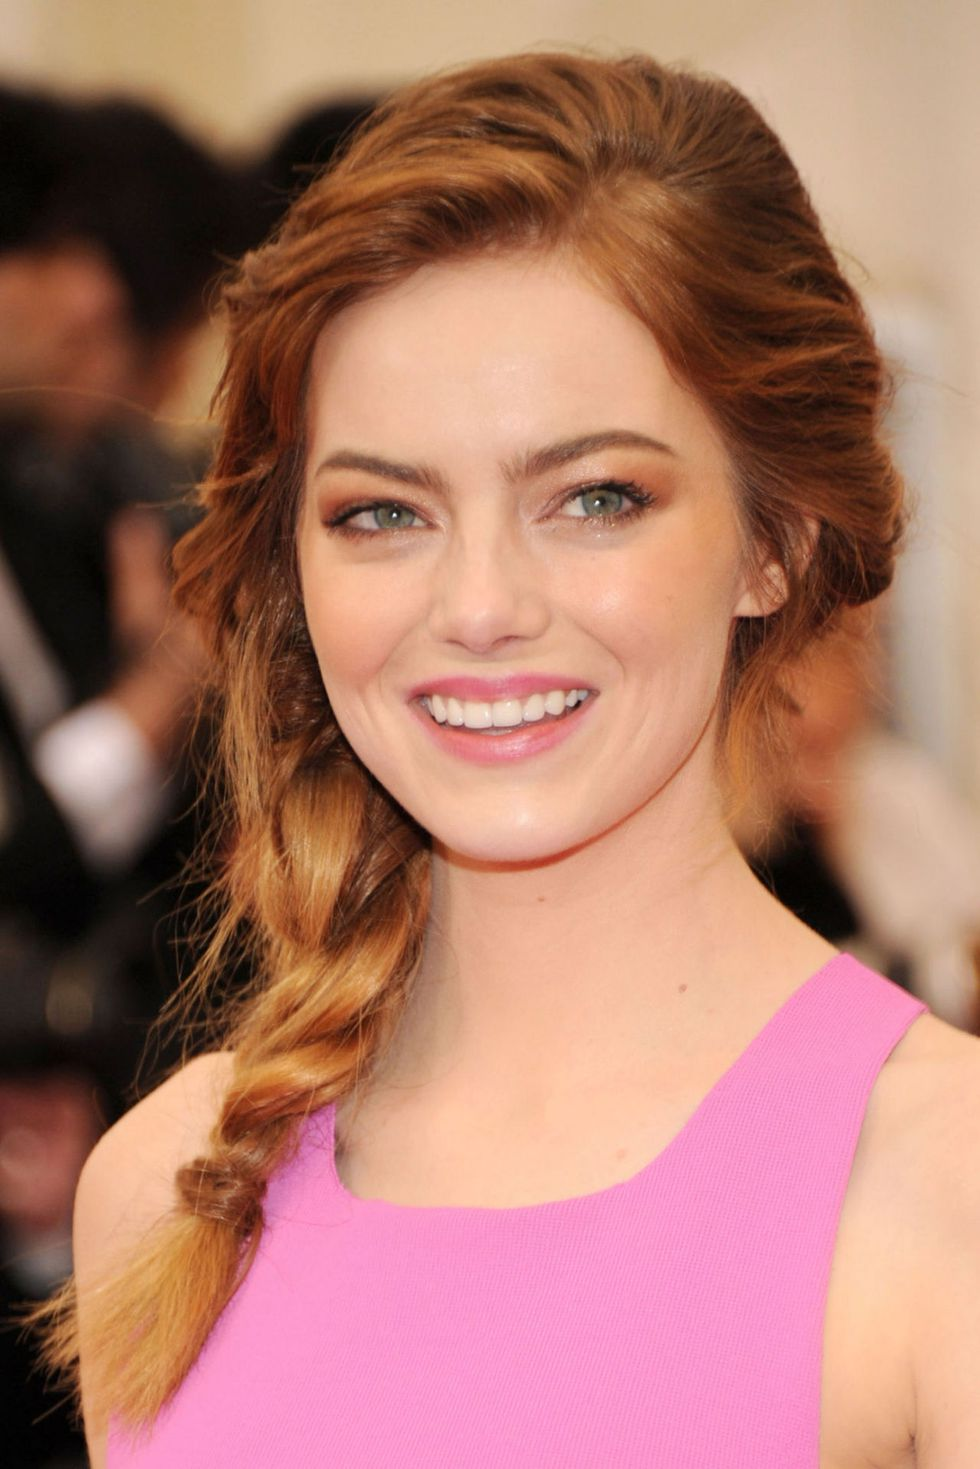 One-Sided-Braided-Hairstyle Classy and Charming Hairstyles for Wedding Guest